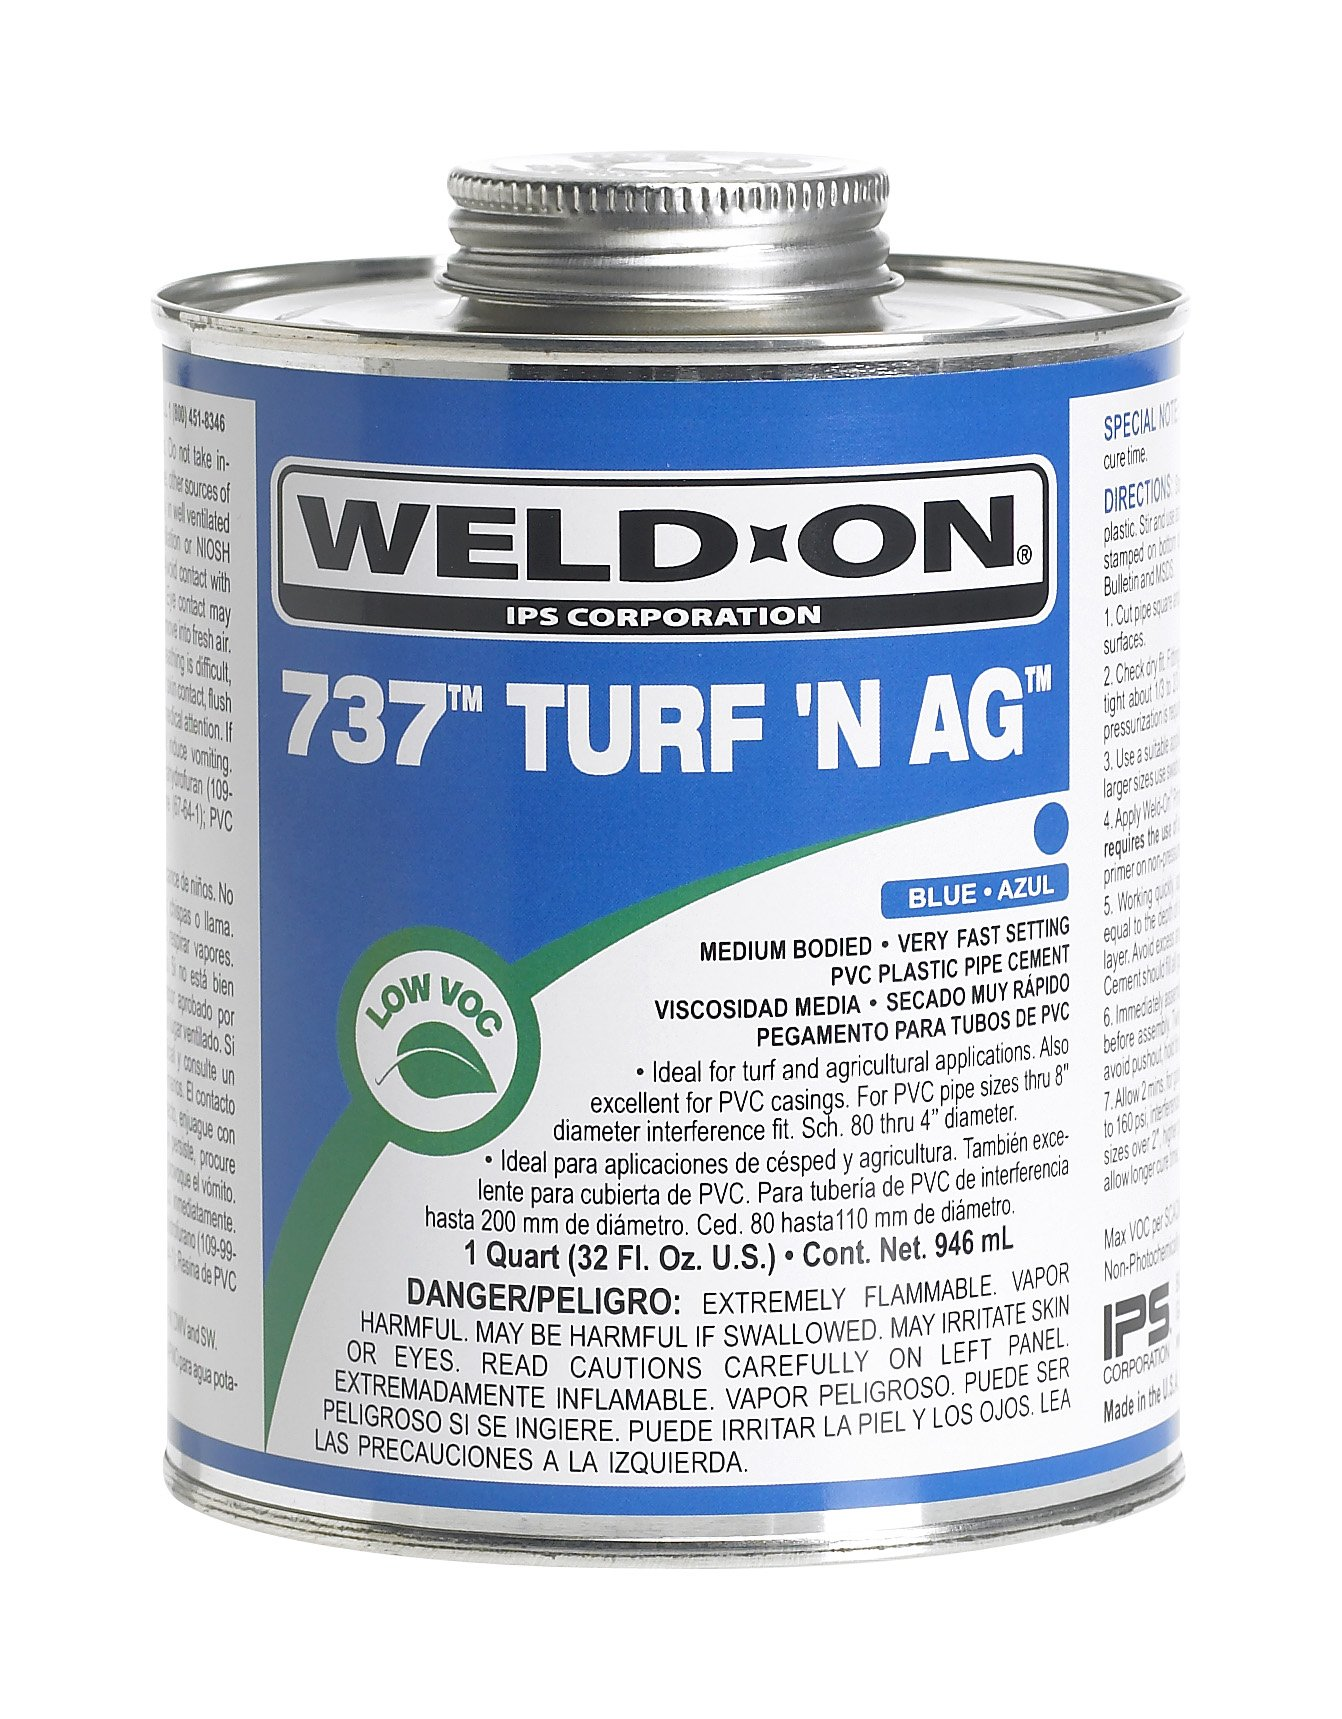 Weld-On 737 10989 Turf 'N Ag, Plumbing-Grade PVC Cement, Medium-Bodied, Very Fast-Setting, 1 quart, Can with Applicator Cap, Blue